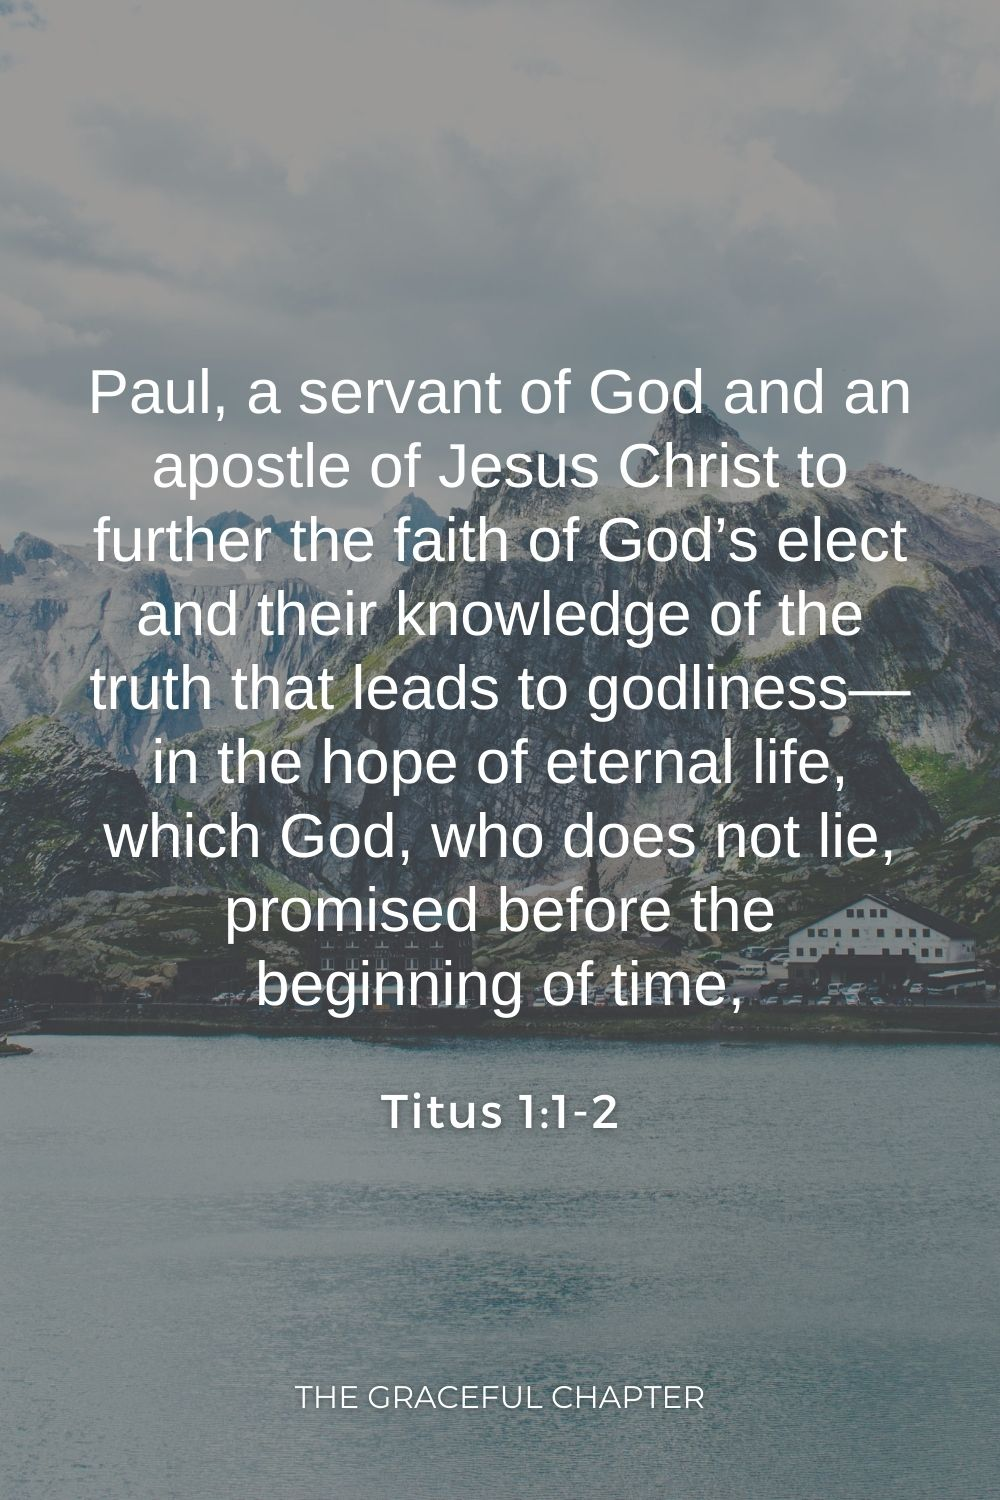 Paul, a servant of God and an apostle of Jesus Christ to further the faith of God's elect and their knowledge of the truth that leads to godliness— in the hope of eternal life, which God, who does not lie, promised before the beginning of time, Titus 1:1-2